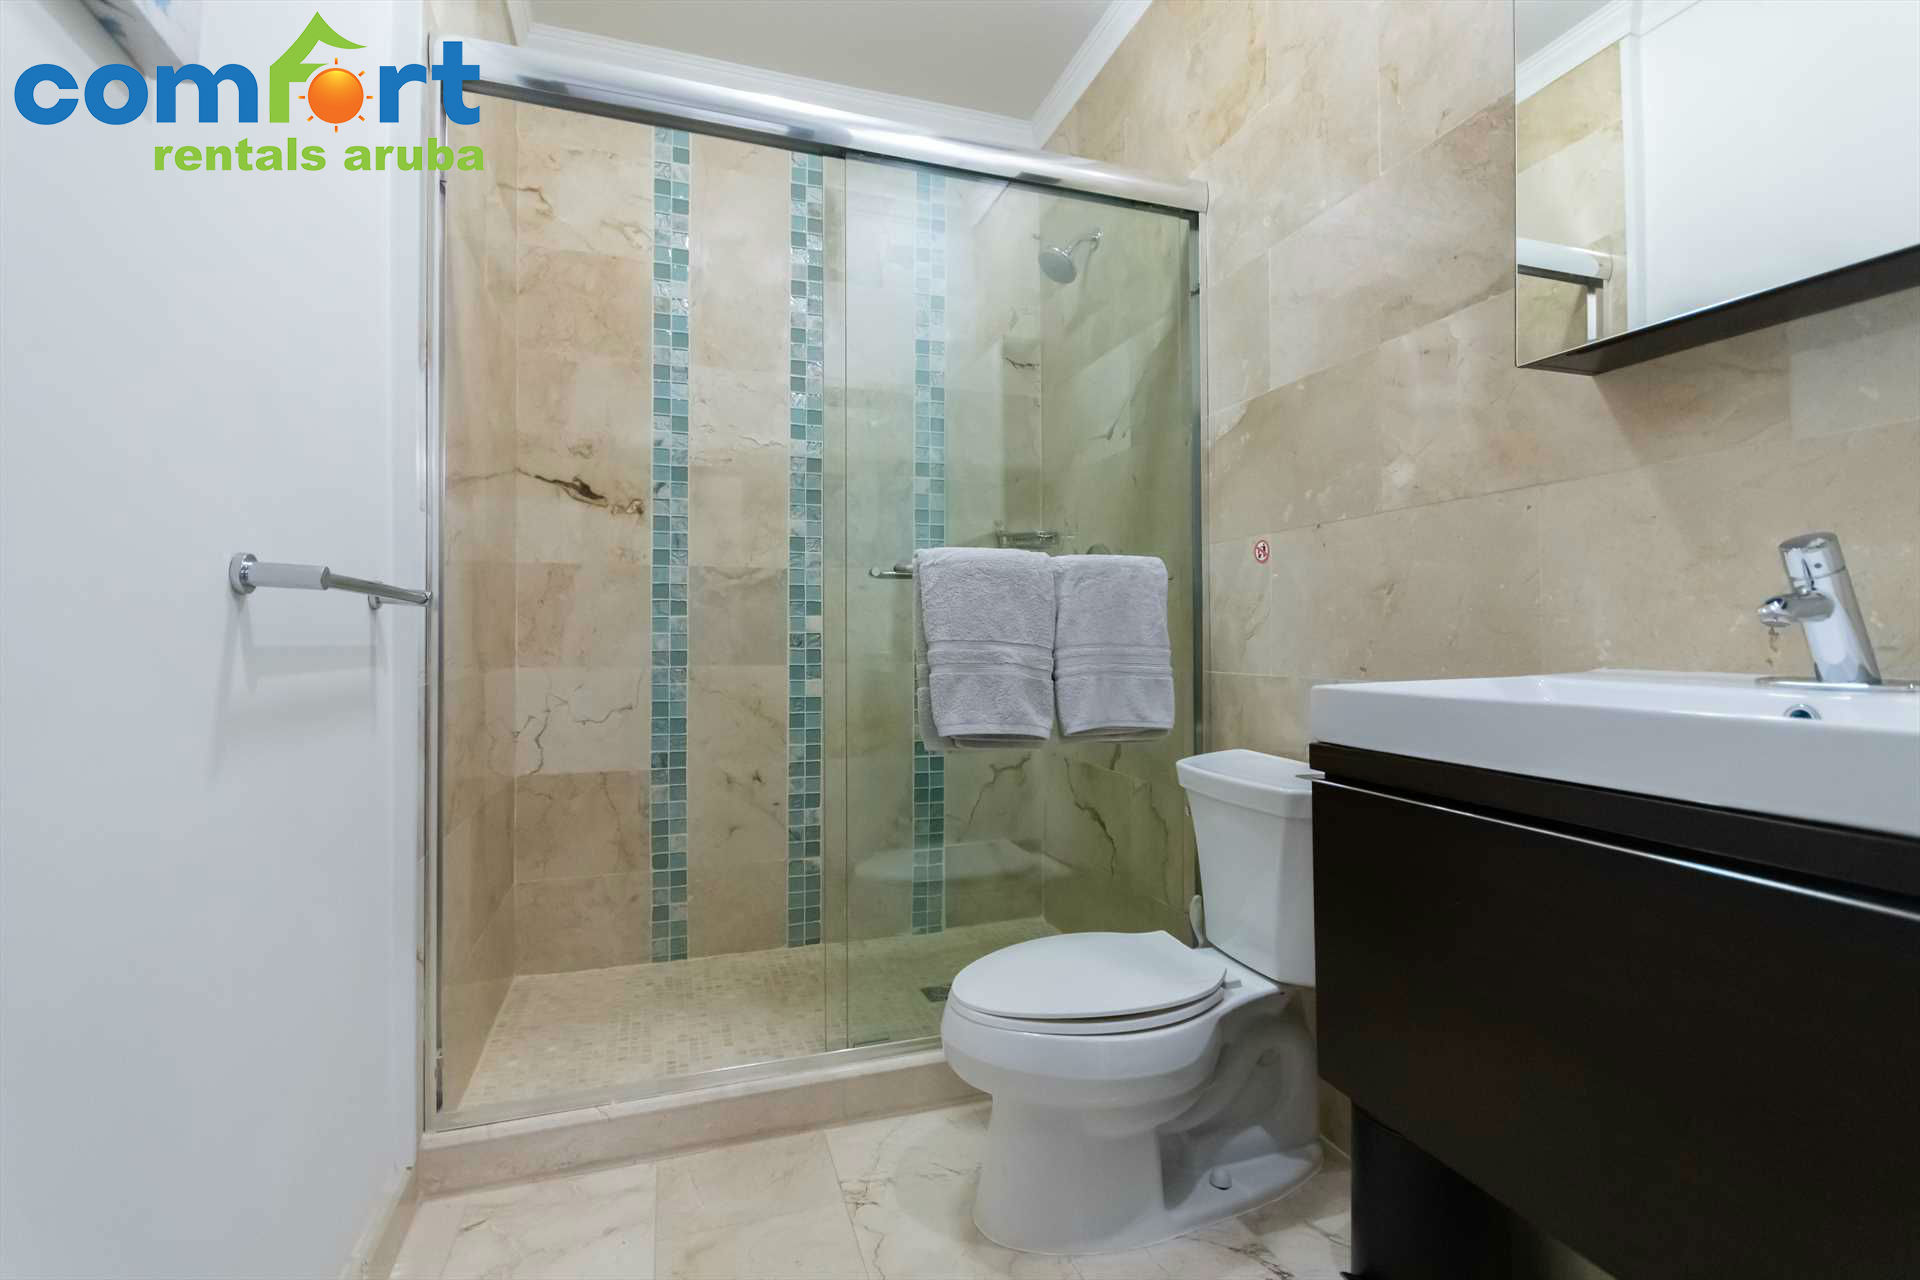 A second separate bathroom with shower